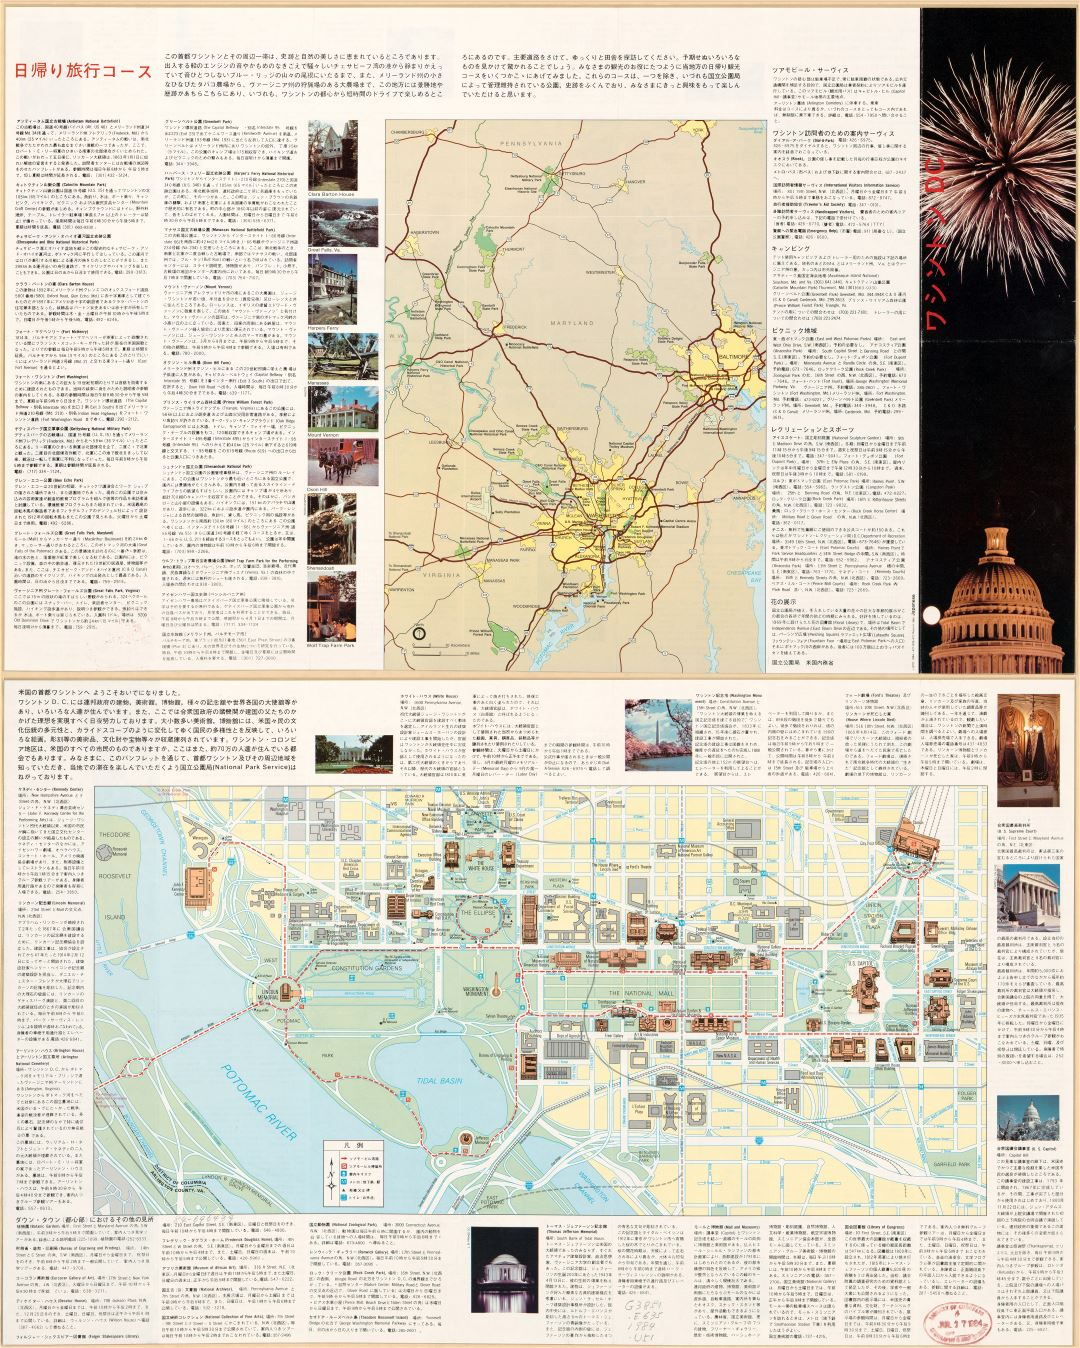 Large scale detailed tourist map of Washington D.C. in chinese - 1984